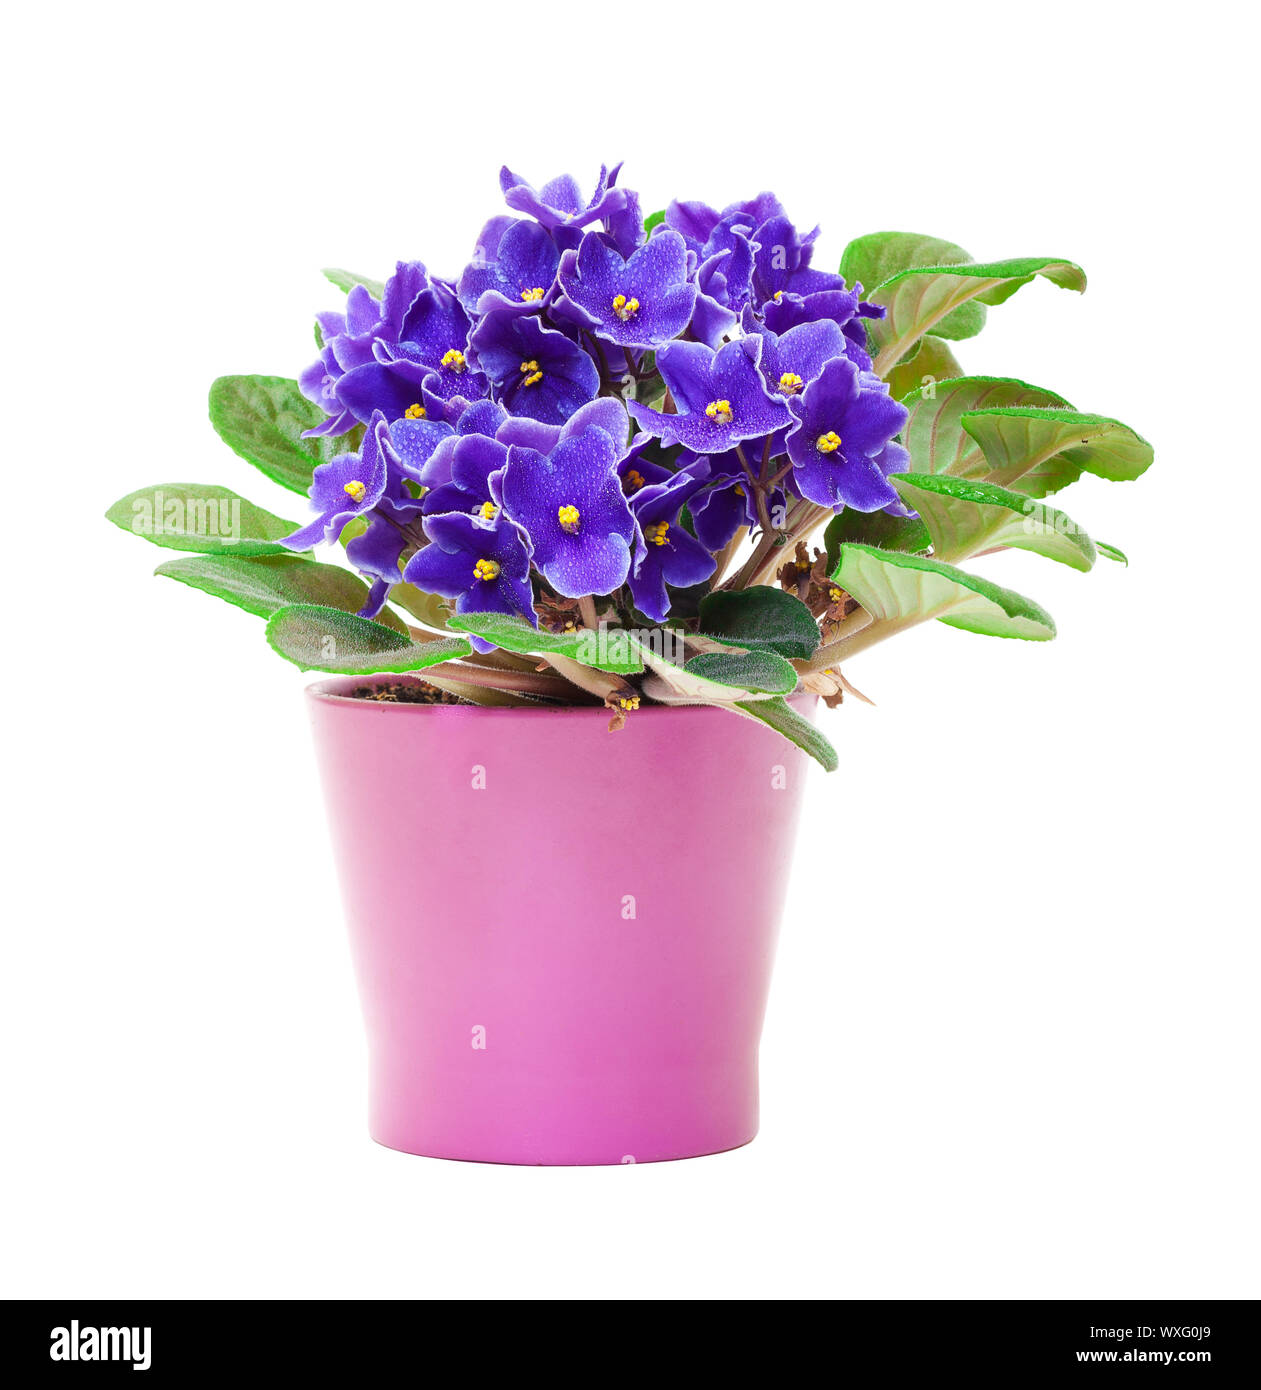 Beautiful Purple Violet Flowers in flowerpot, on white background Stock Photo